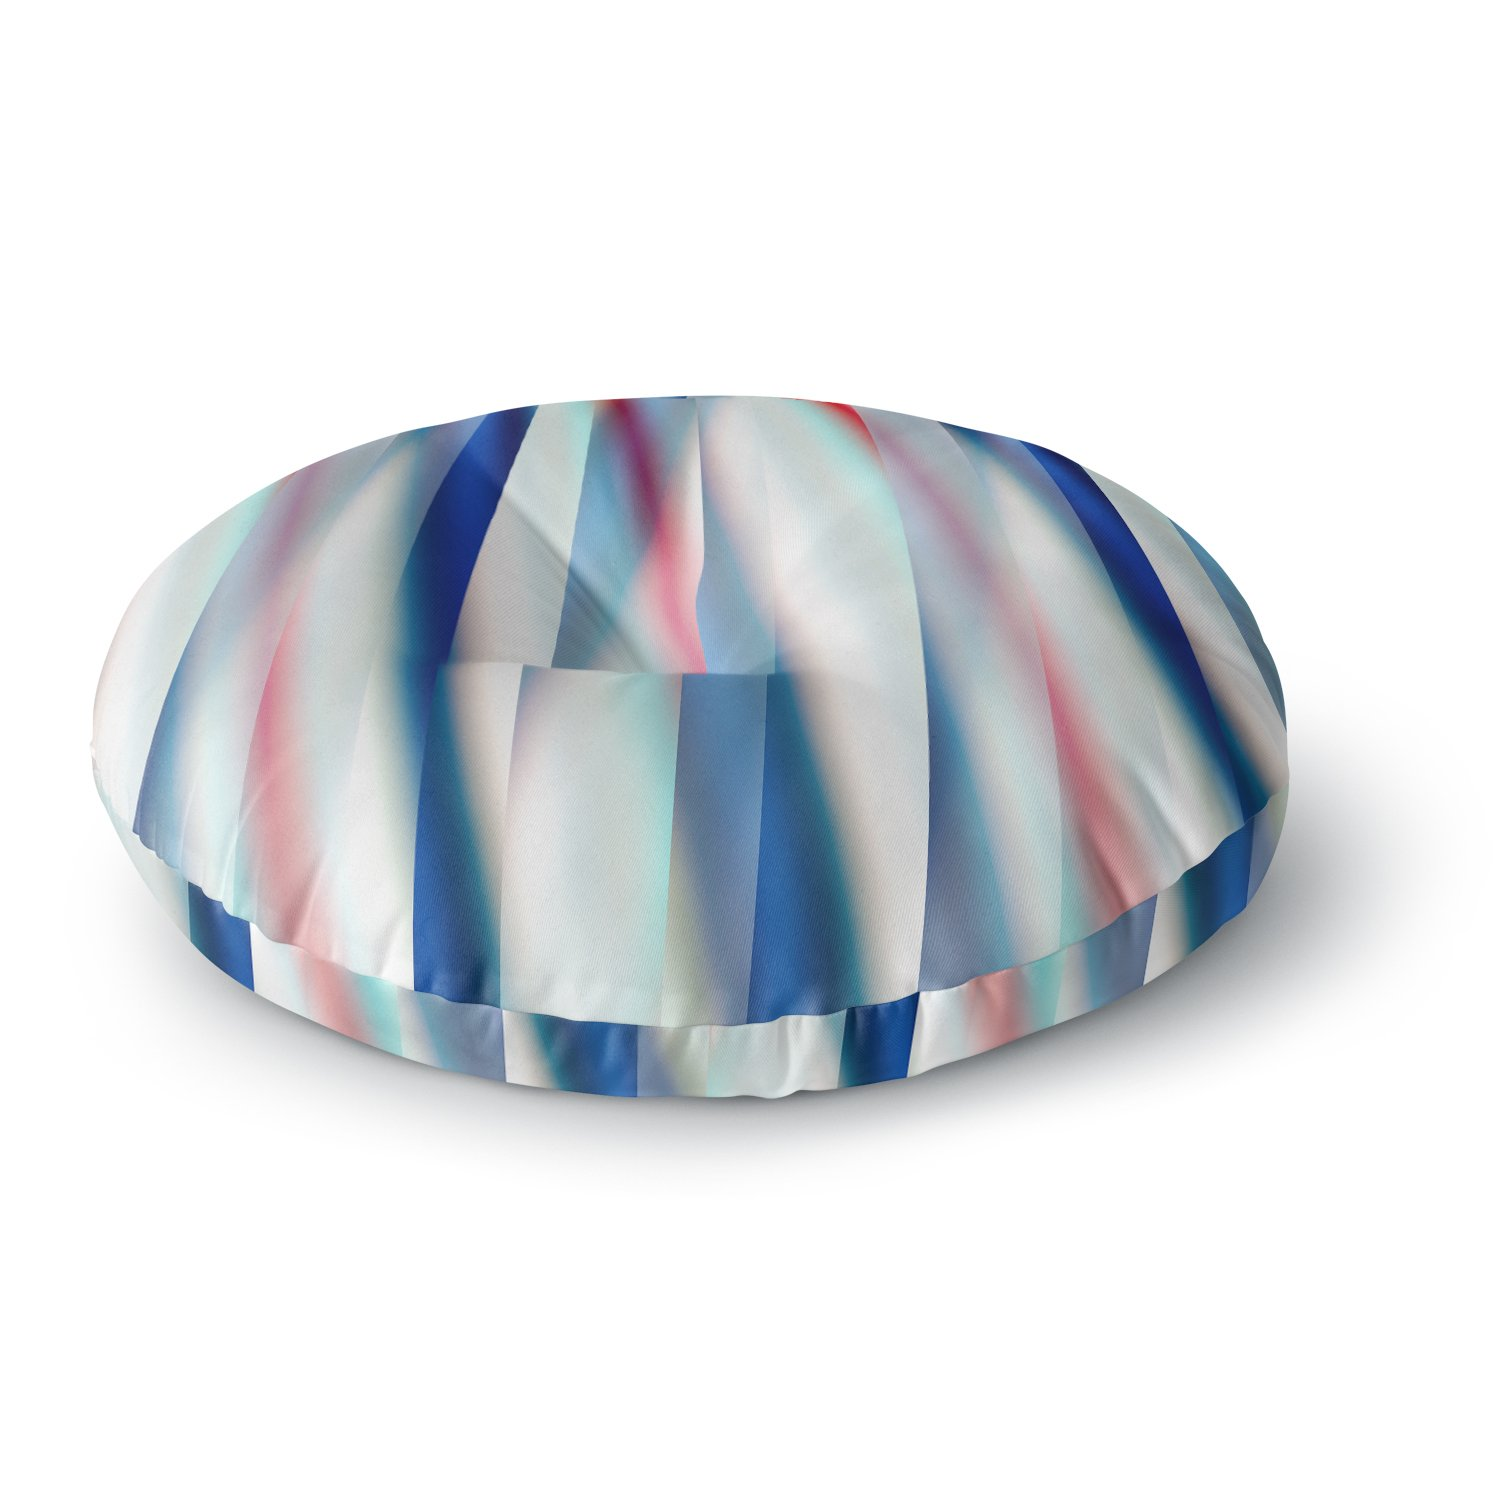 Kess InHouse Bruce Stanfield Ambient 12 Red Blue Round Floor Pillow 26